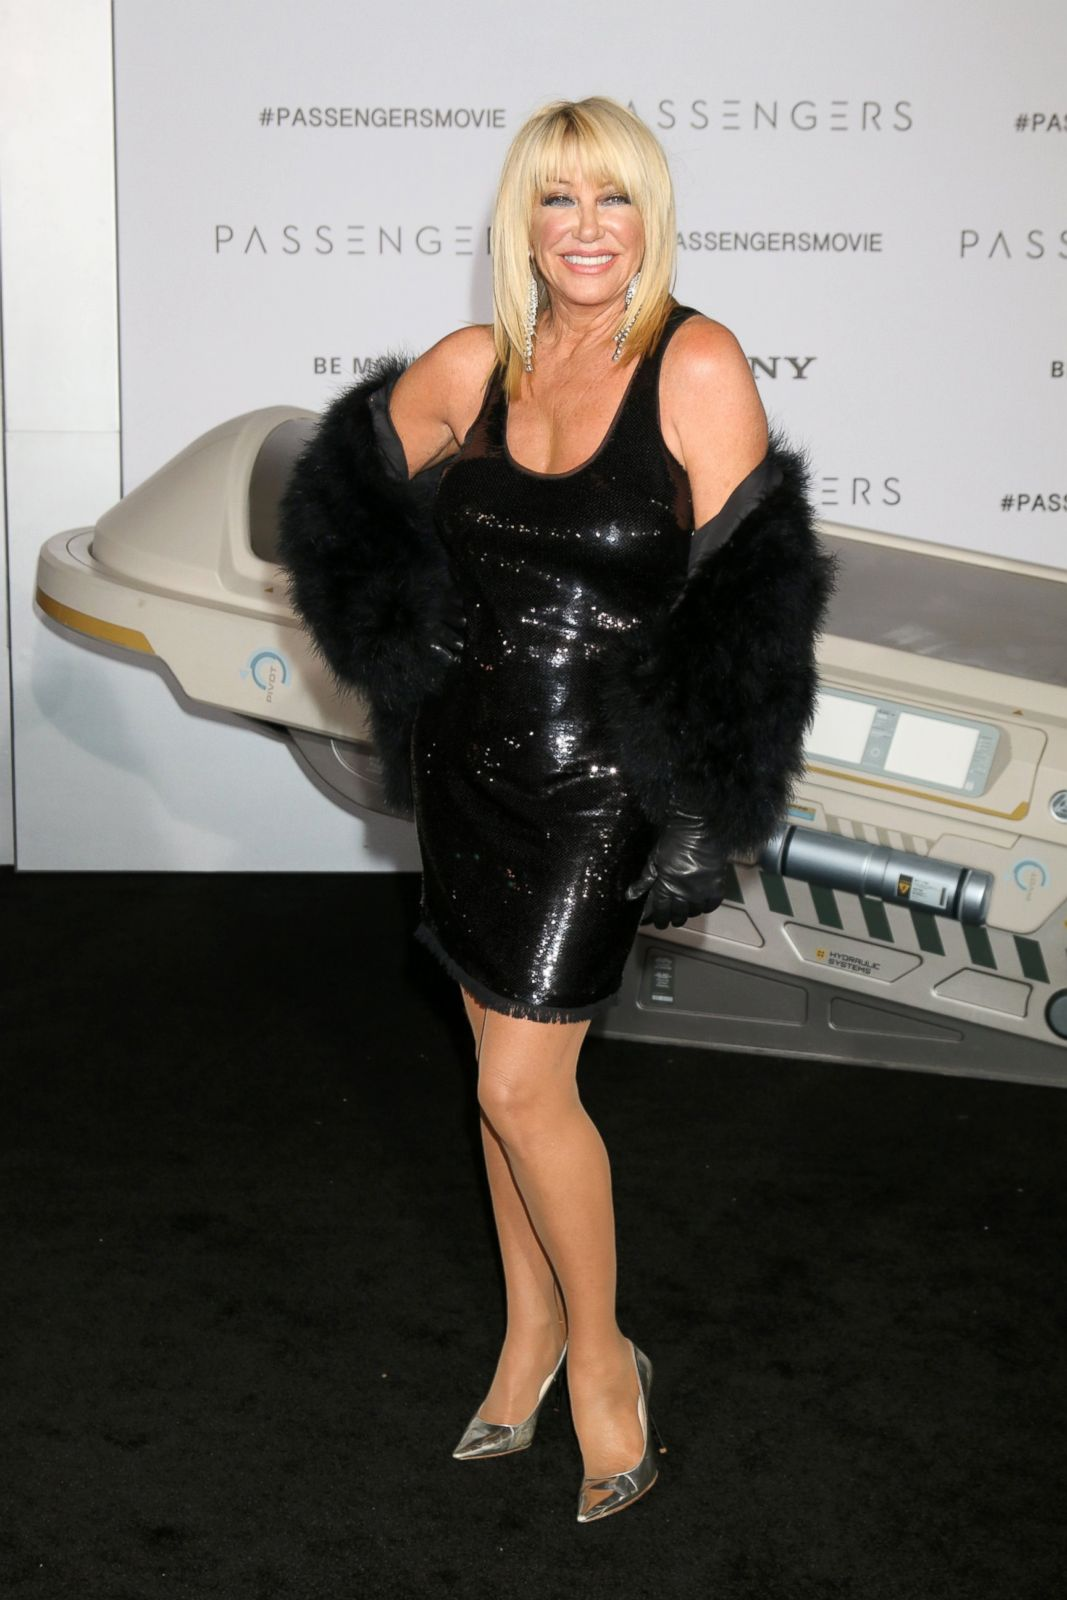 Suzanne Somers Hits Carpet In Black Dress Picture  Fab Over 50 - Abc News-2476